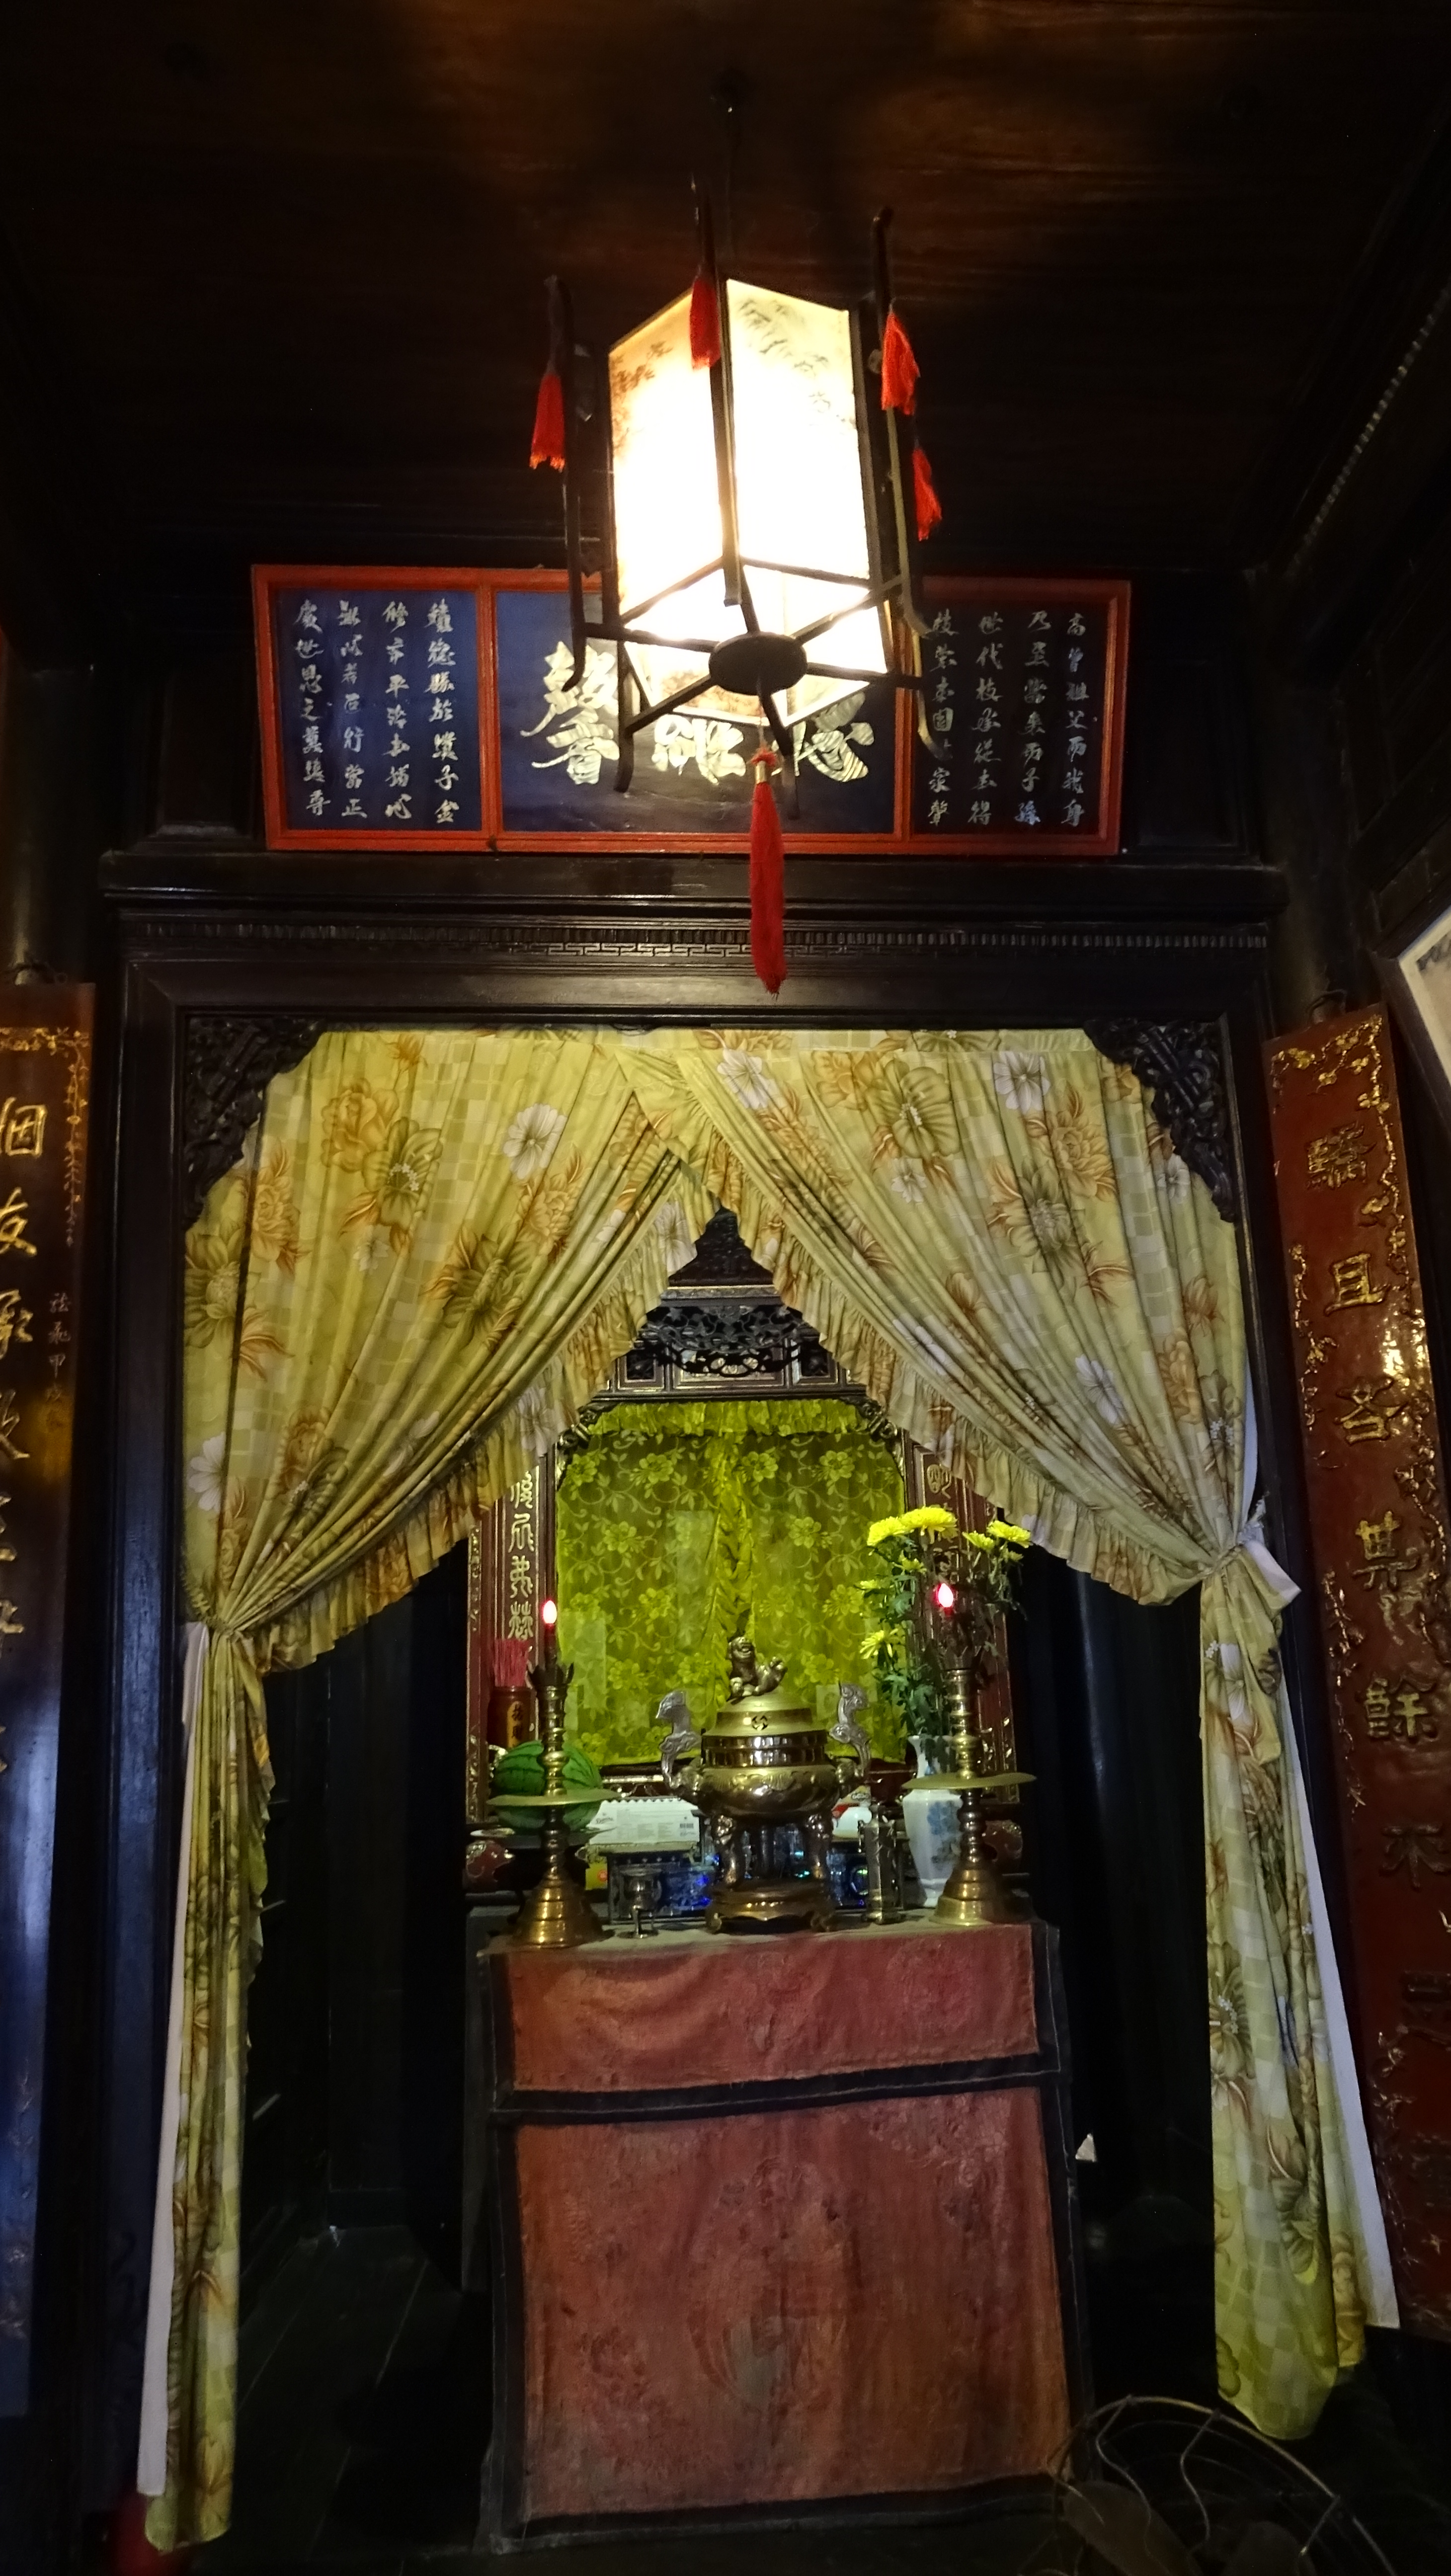 A paper lantern hanging above a home altar hidden behind the curtains in a wooden cabinet decorated with Chinese characters